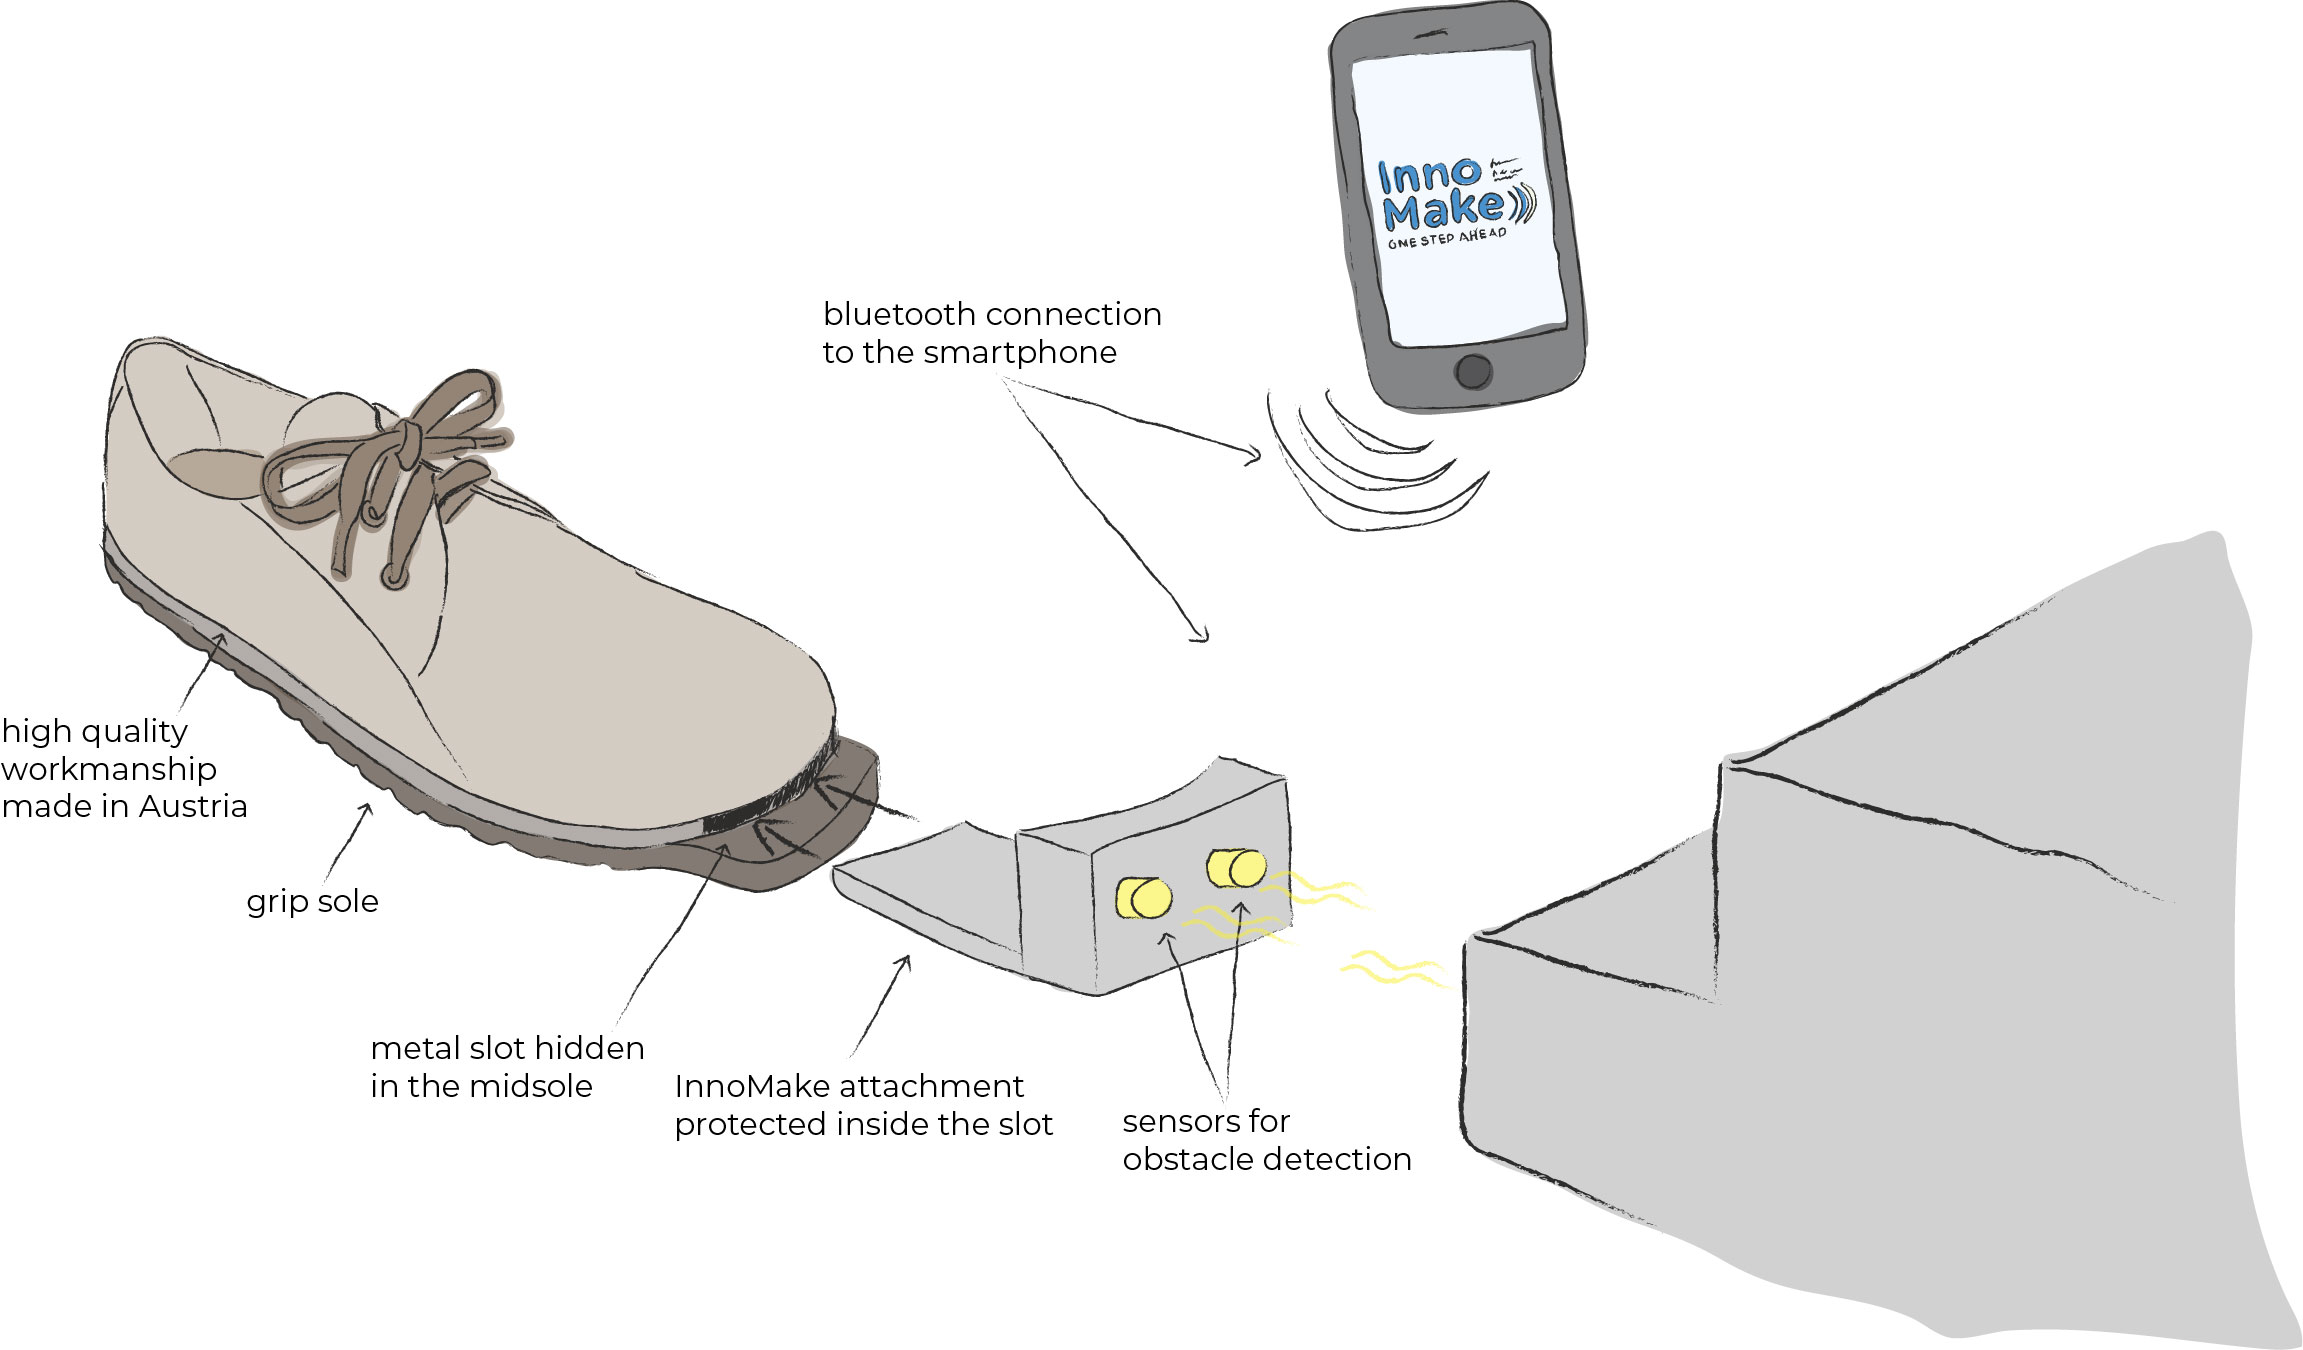 Image: Infographic InnoMake, shoe with InnoMake attachment for detecting obstacles, smartphone for InnoMake App; Text: High-quality workmanship from Austria, Profiled sole, Metal track concealed in the midsole, InnoMake attachment protected in the track, Sensors for detecting obstacles, Bluetooth connection to a smartphone